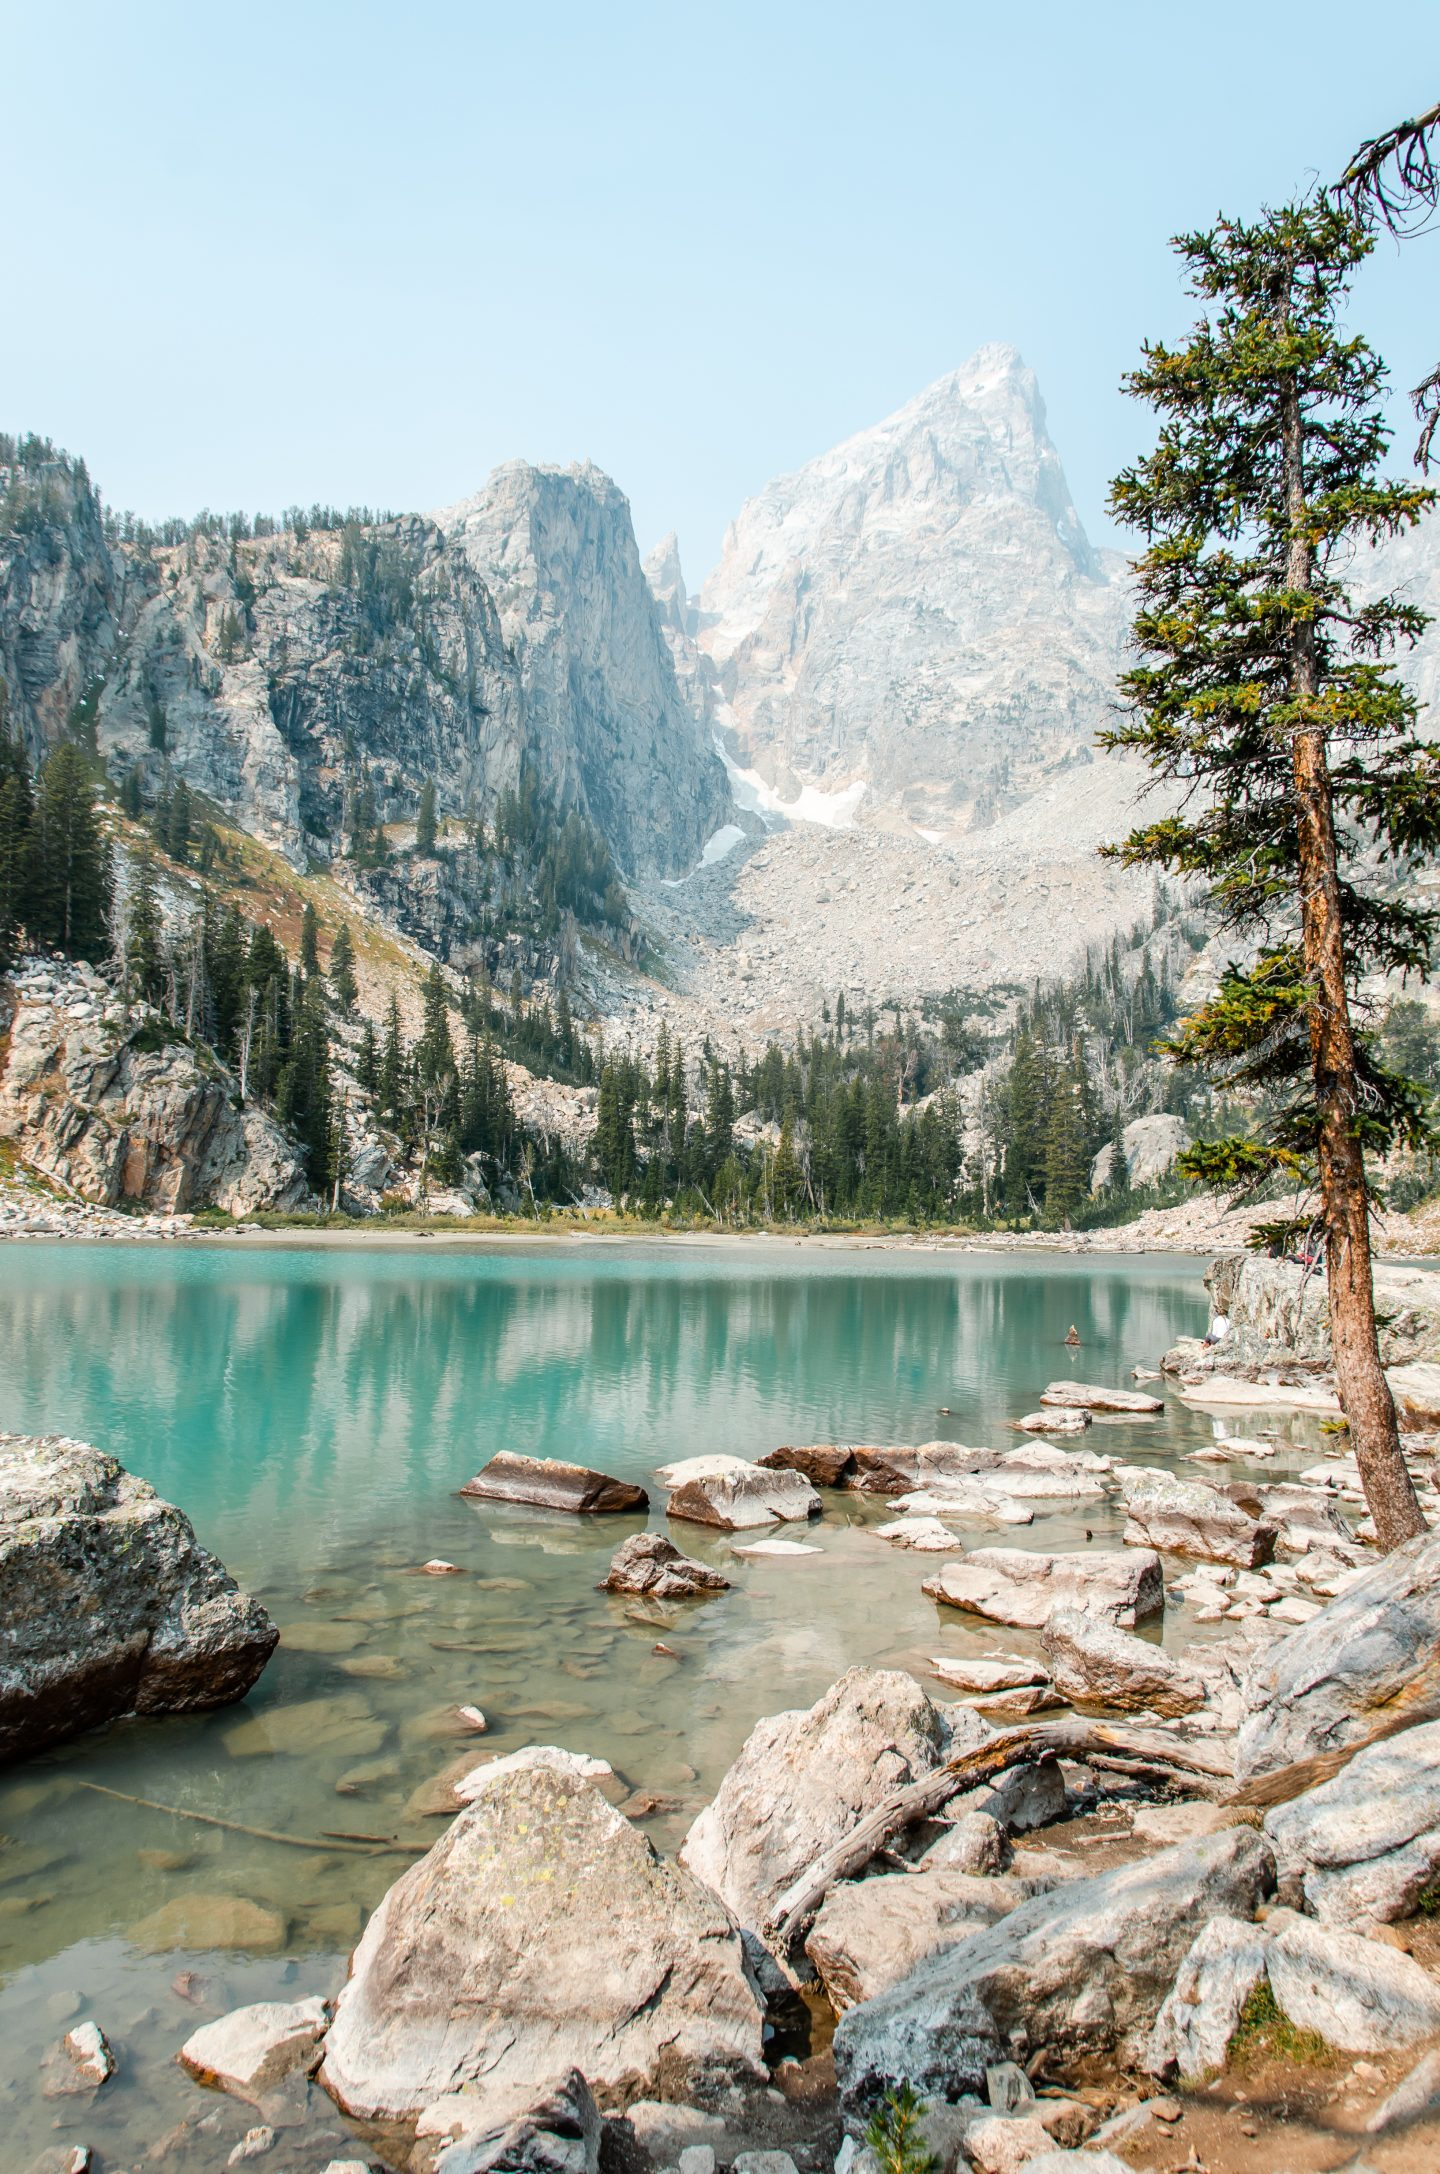 delta lake - best hikes in the US